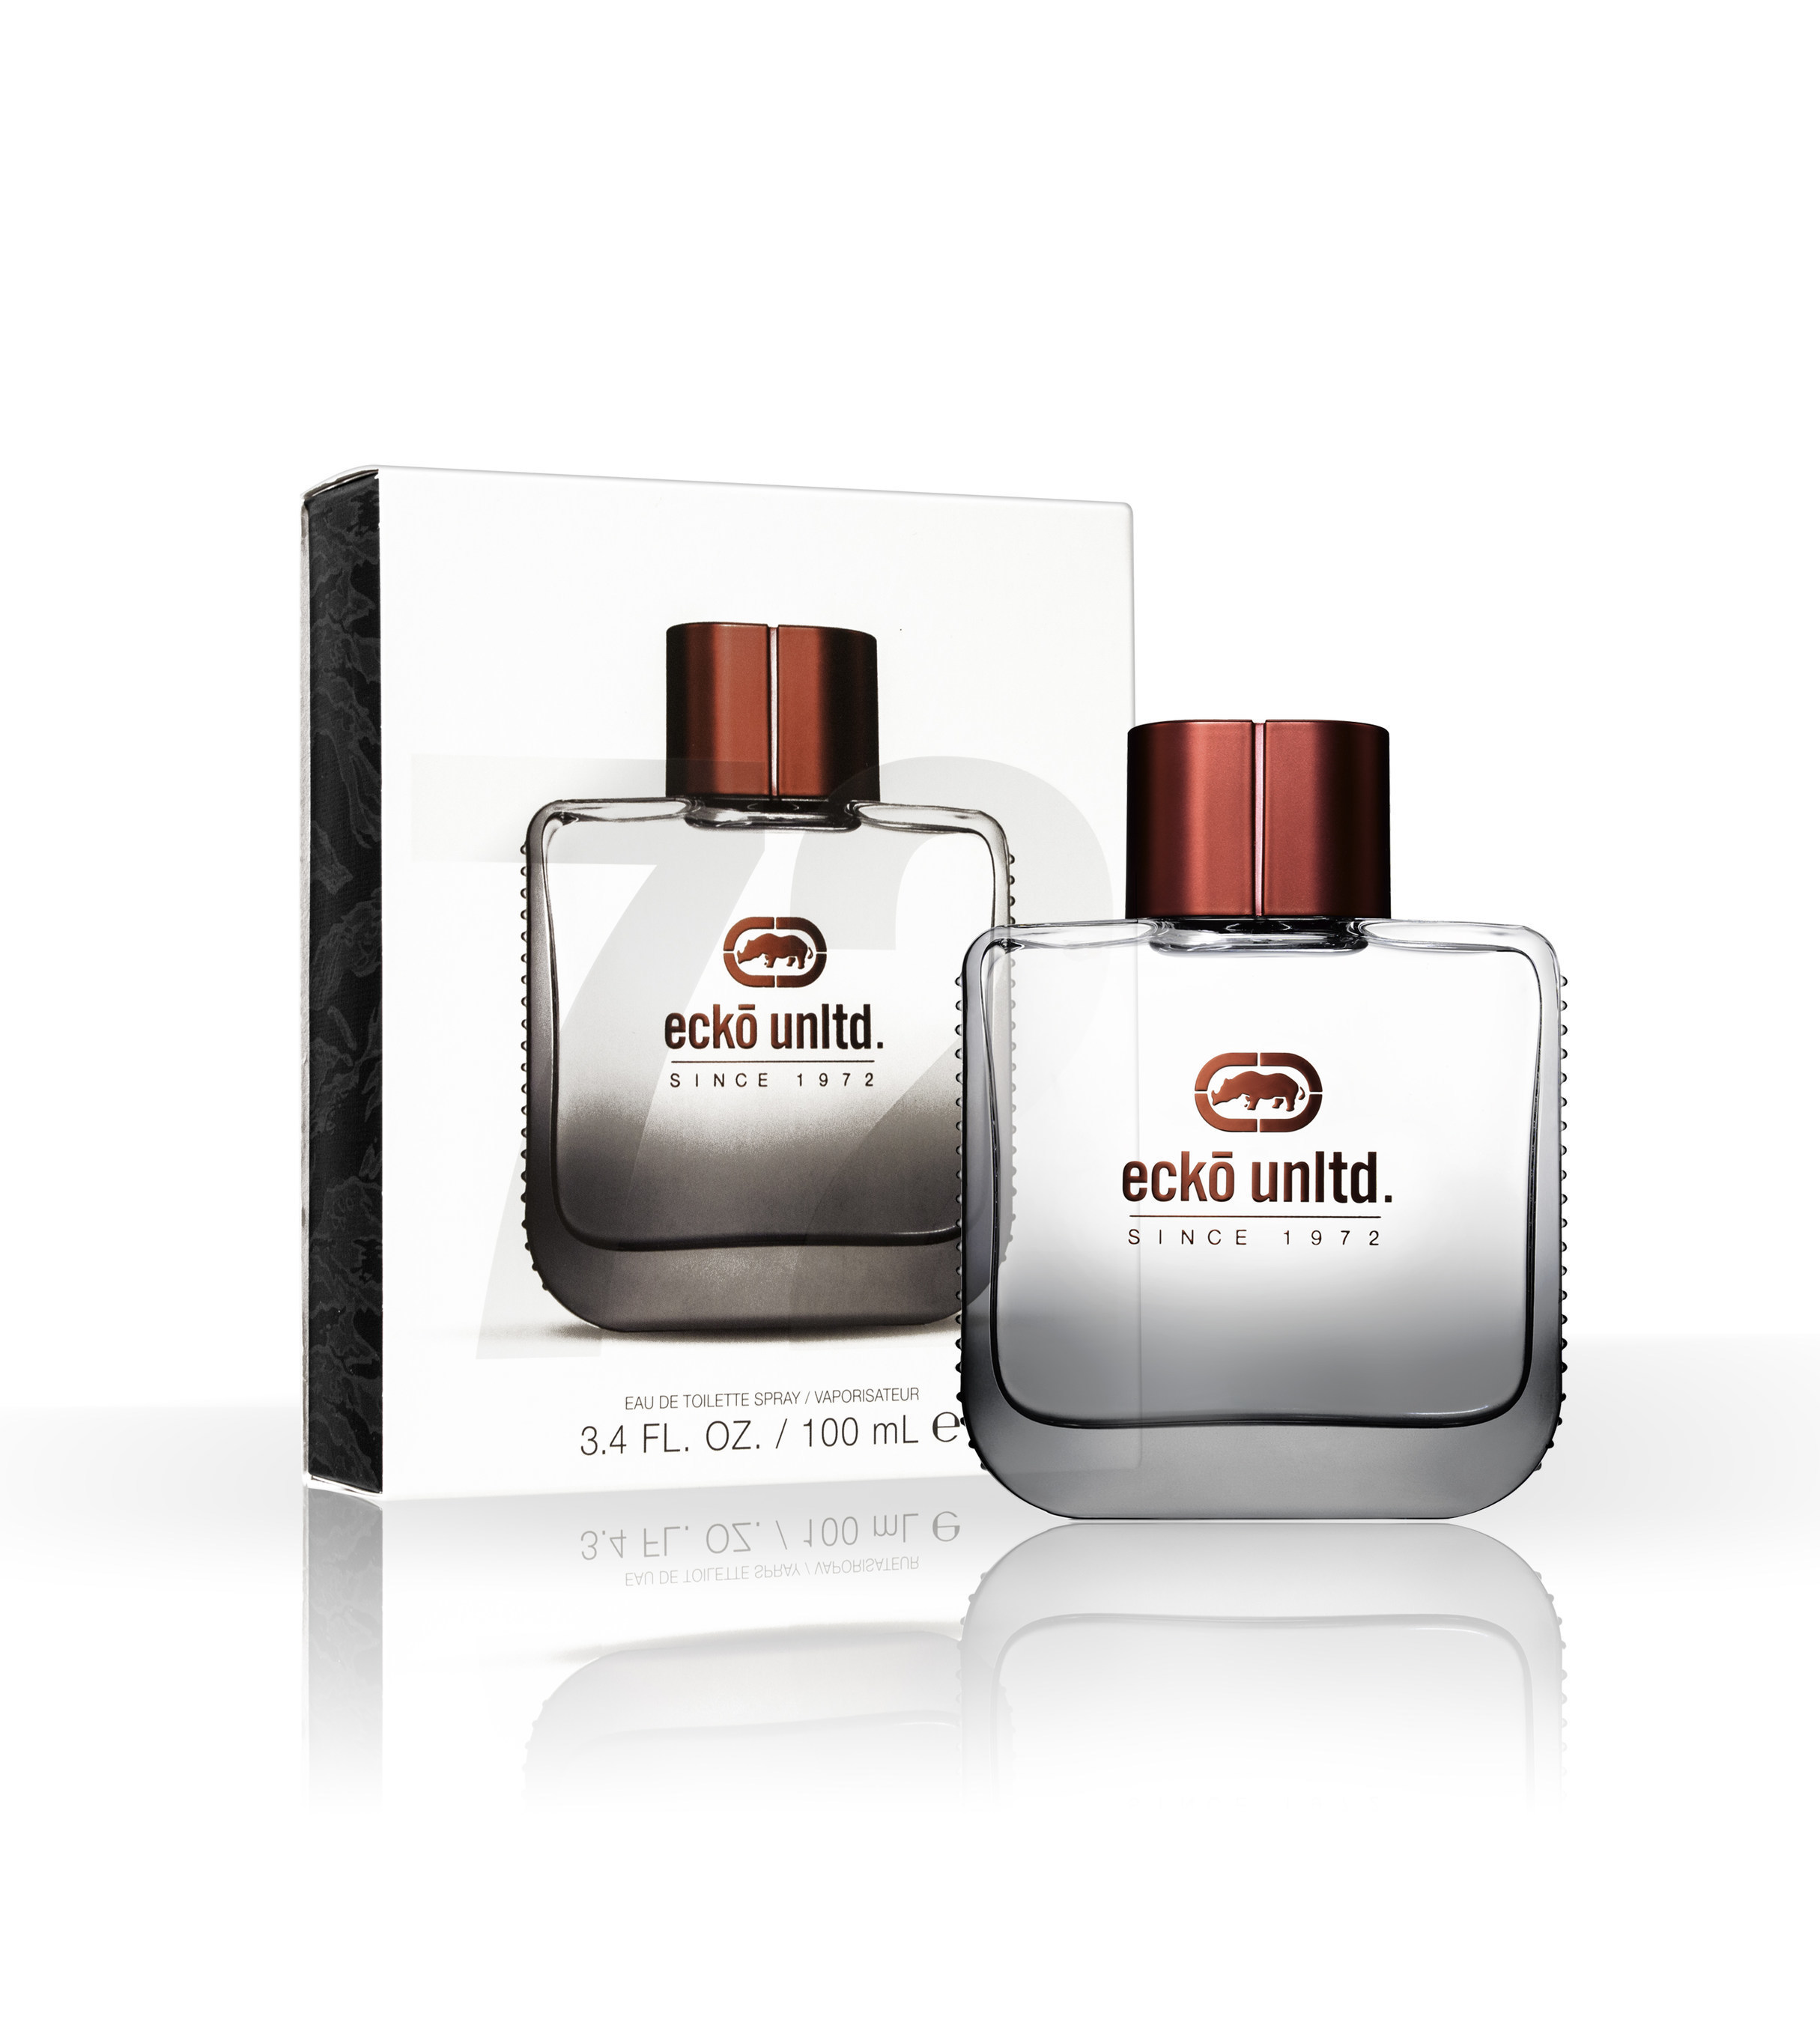 Ecko Unltd  72, A New Fragrance For Men, Launches Initiative To